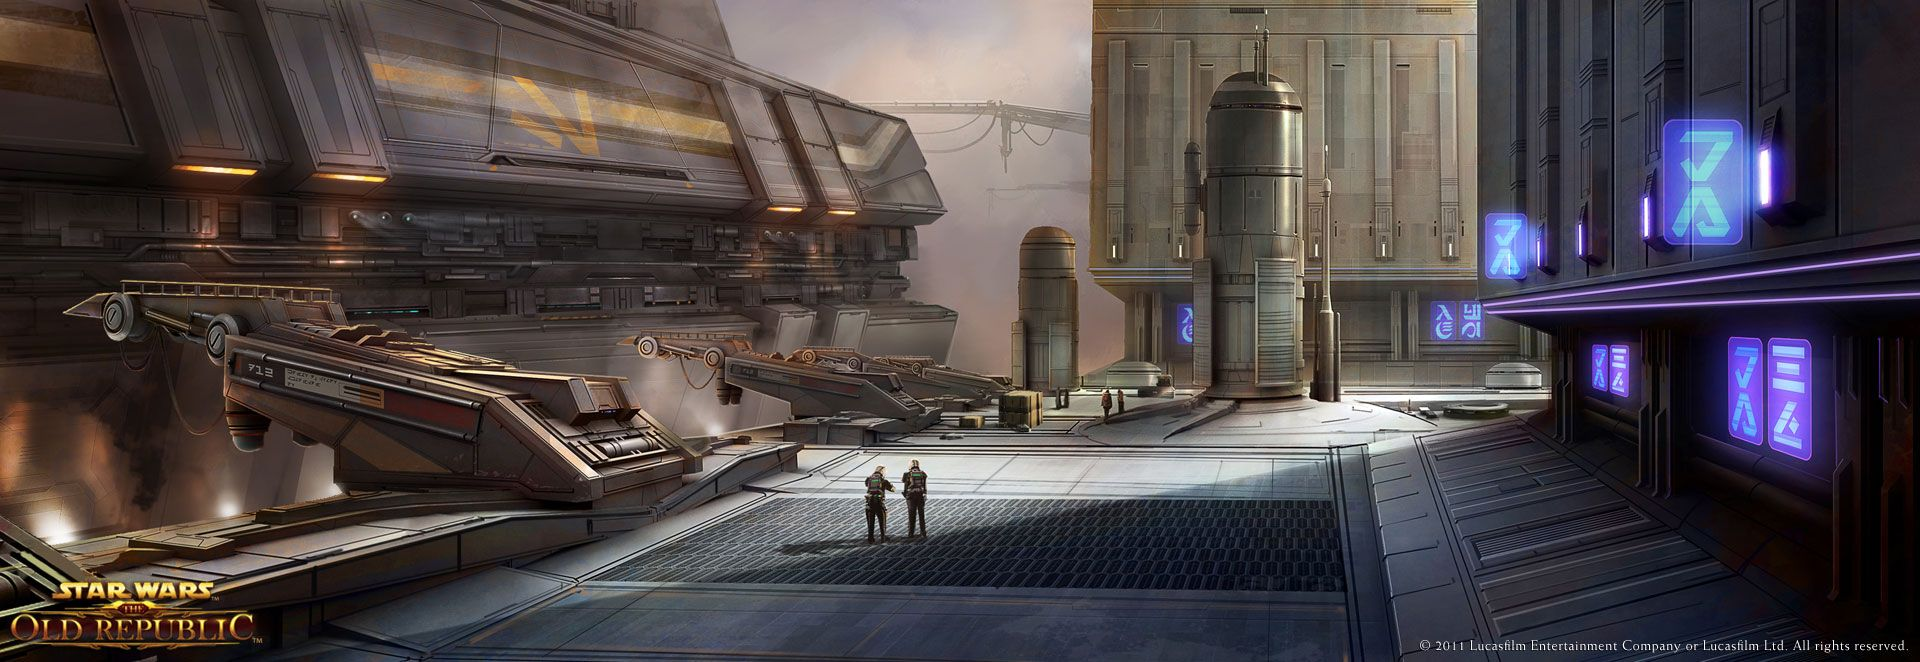 SWTOR Concept Art - Corellia | My Father's Father | The ...